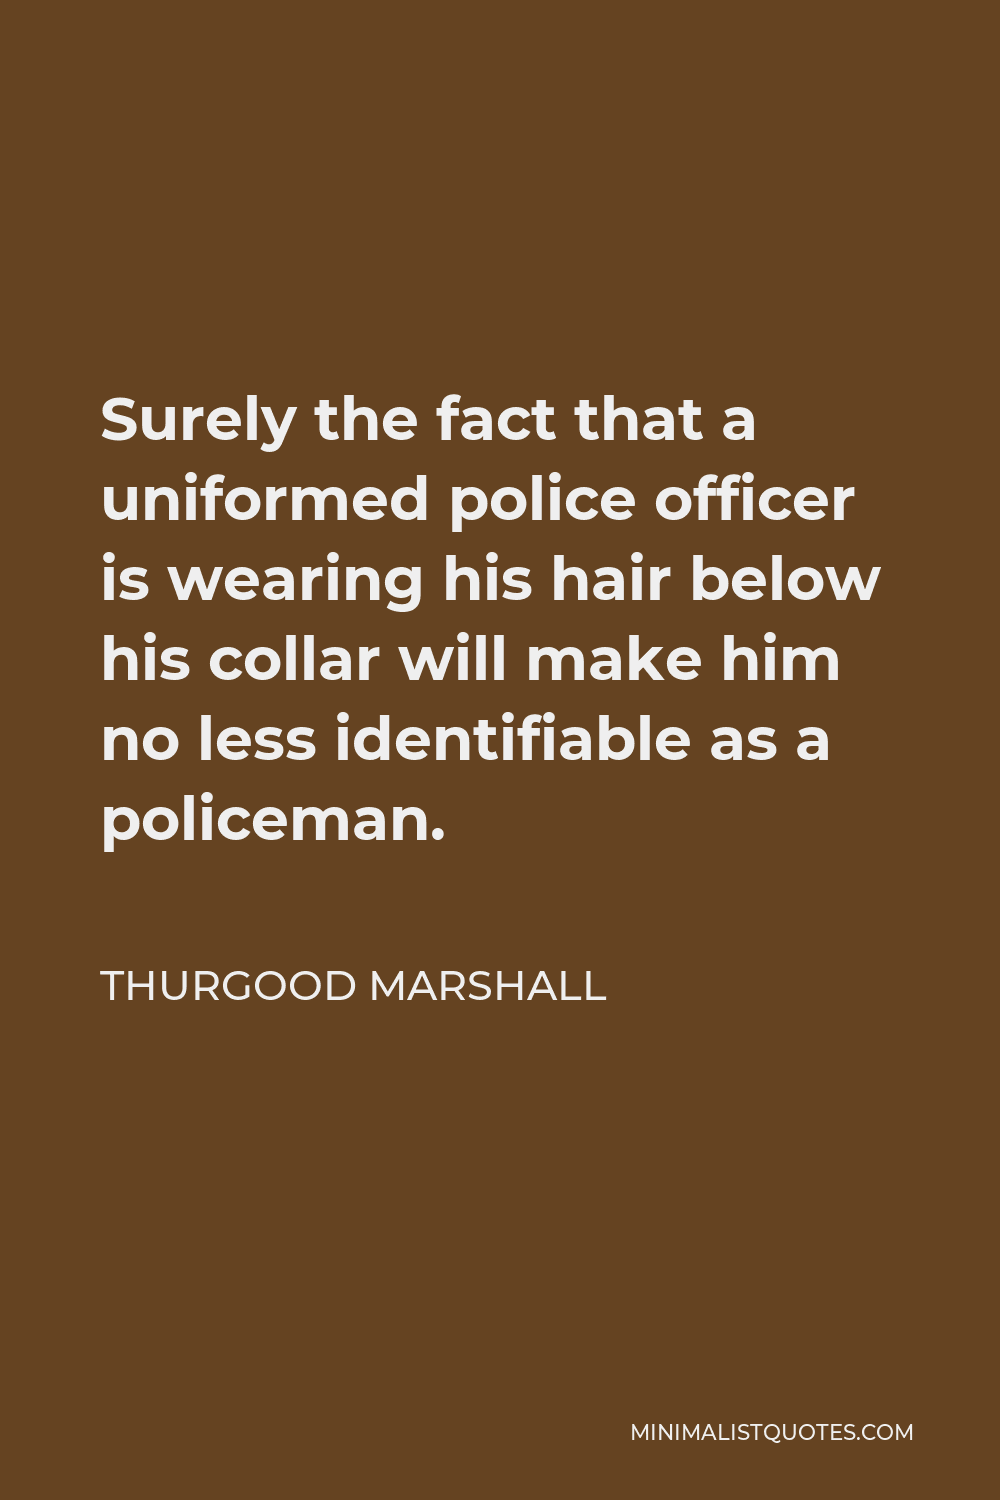 Thurgood Marshall Quote - Surely the fact that a uniformed police officer is wearing his hair below his collar will make him no less identifiable as a policeman.